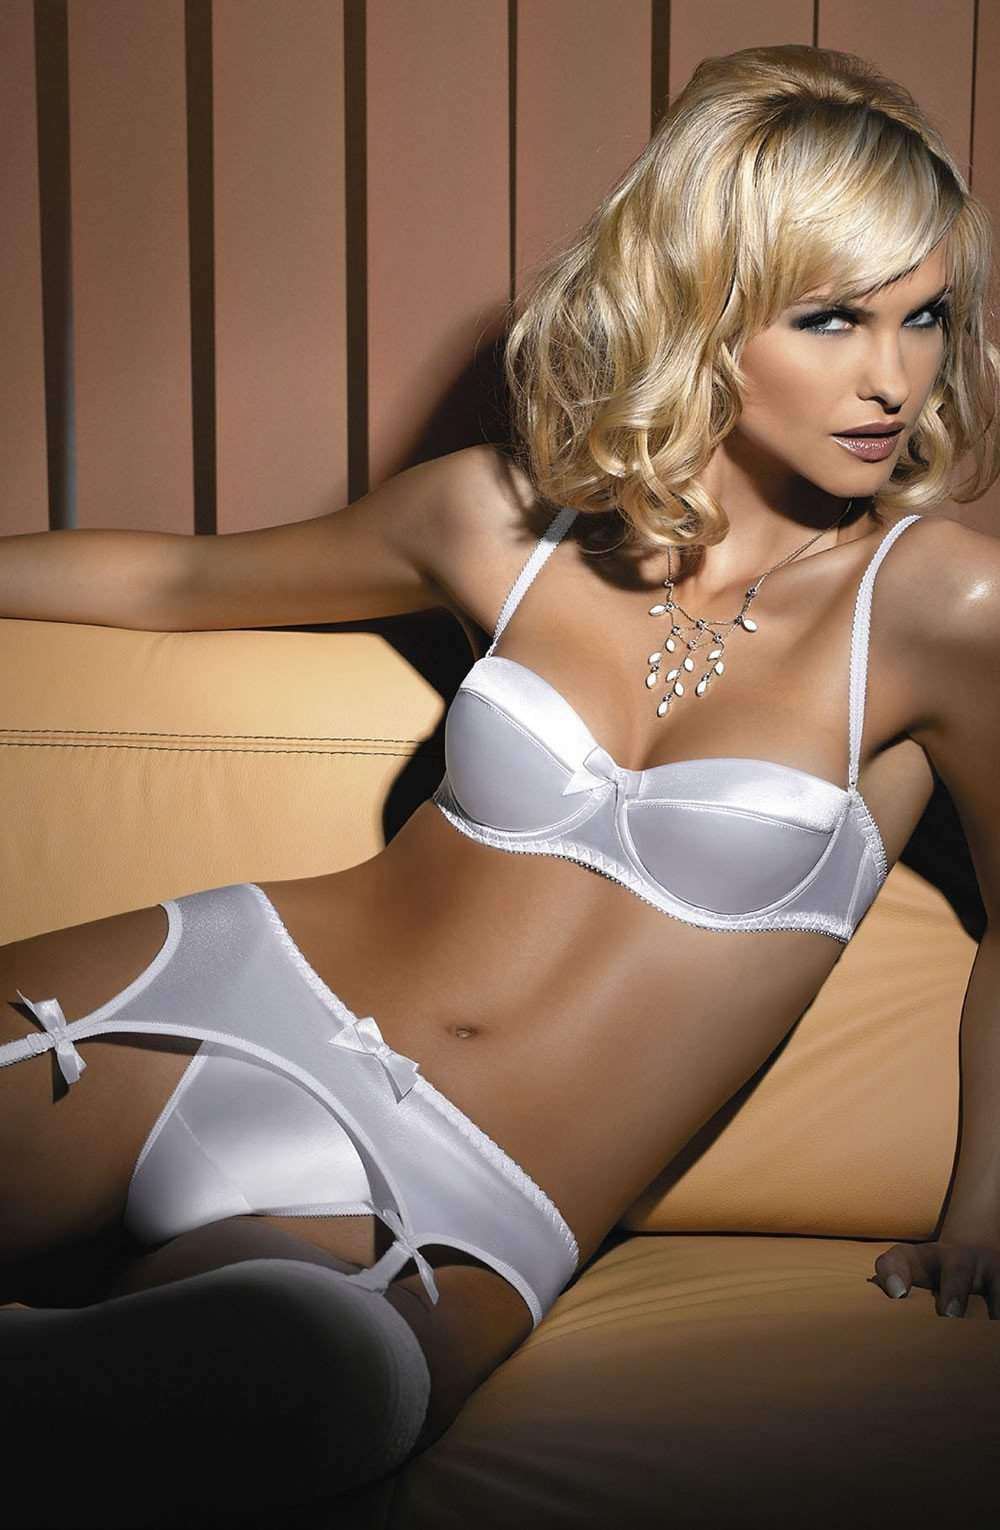 Lucy Bra In White by Gracya - Gracya - Katys Boutique Lingerie USA